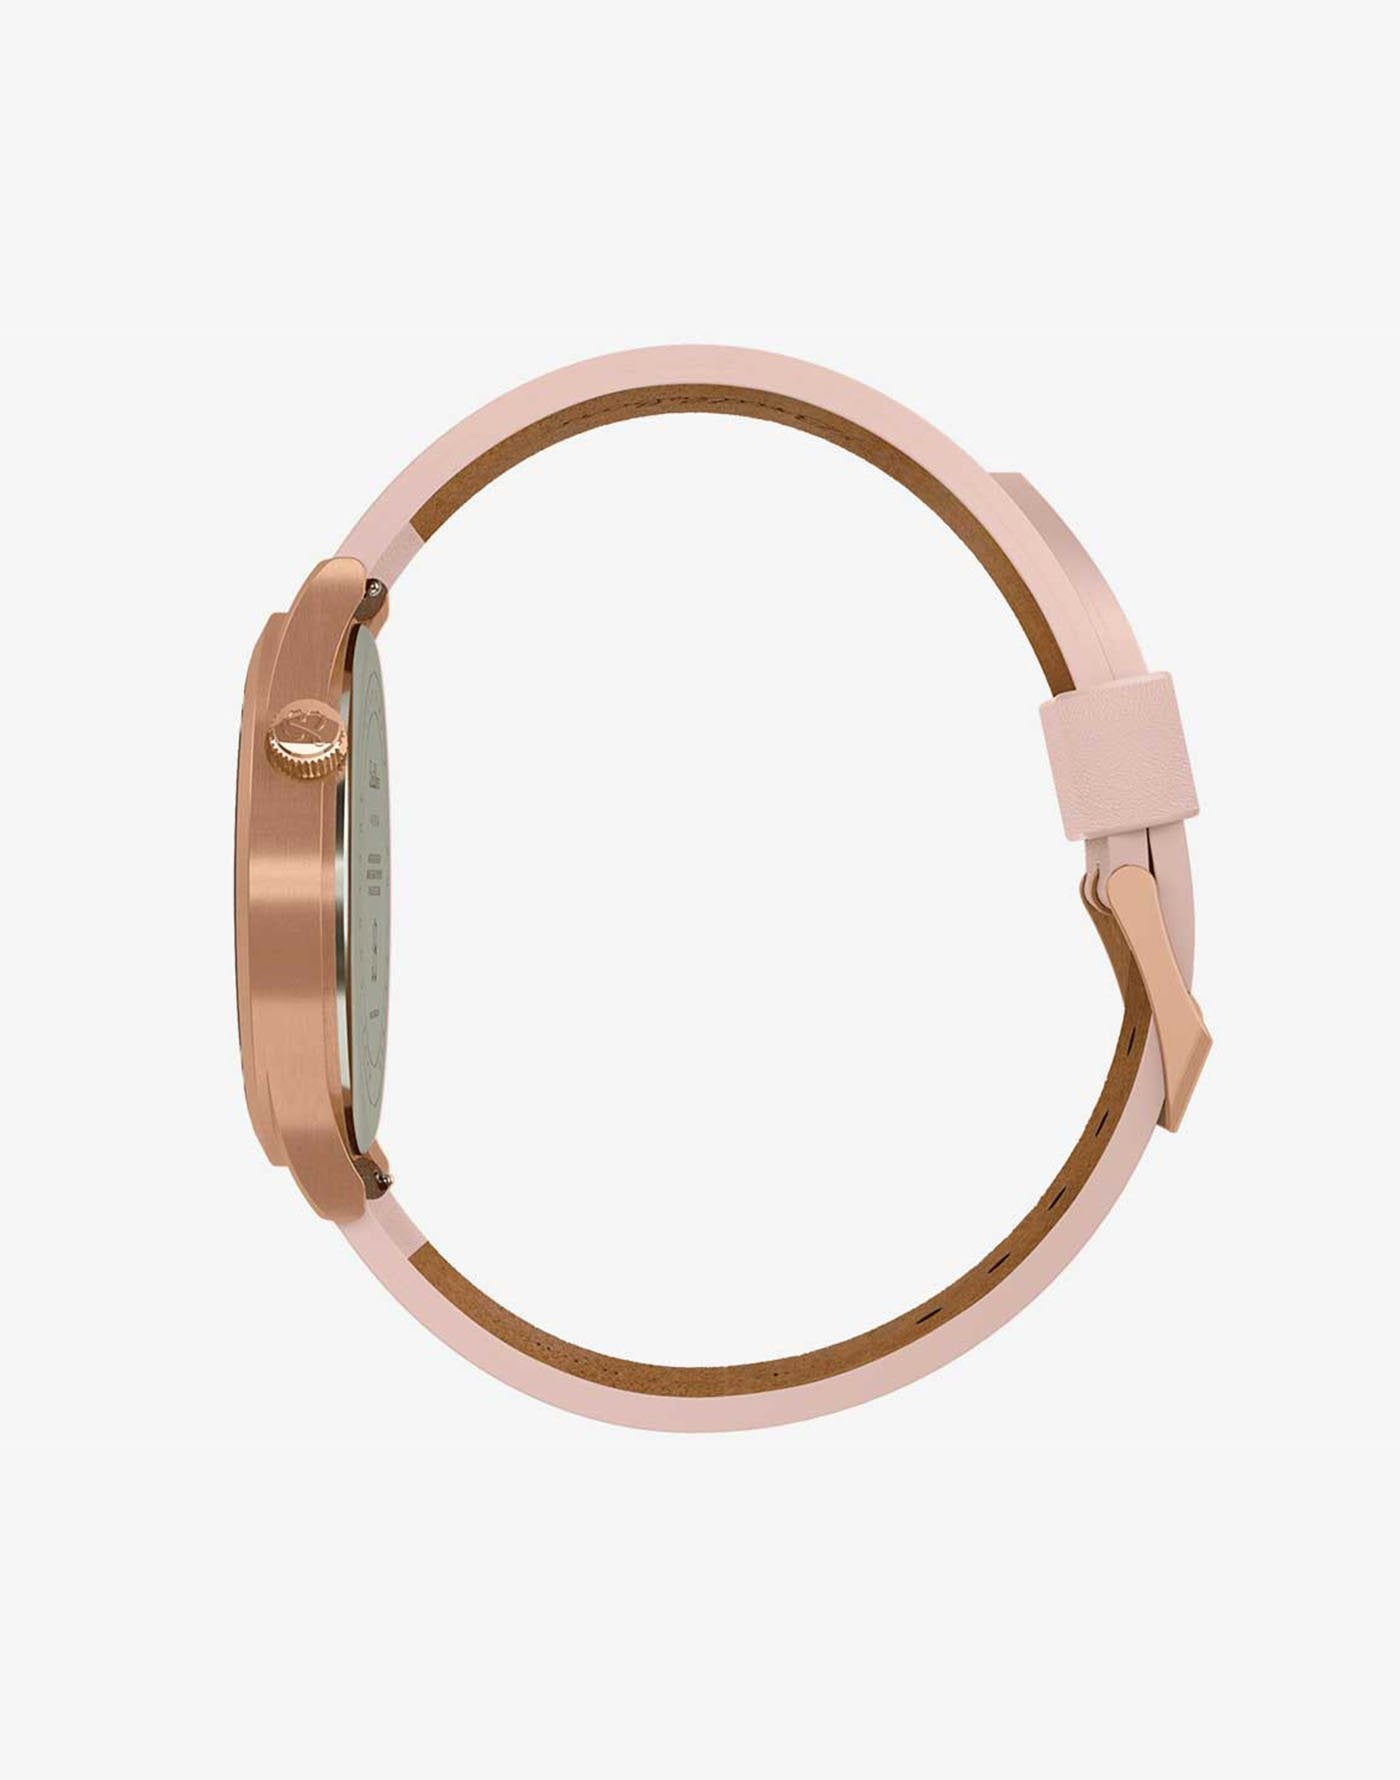 Ø 38mm · ROSE GOLD PEACH